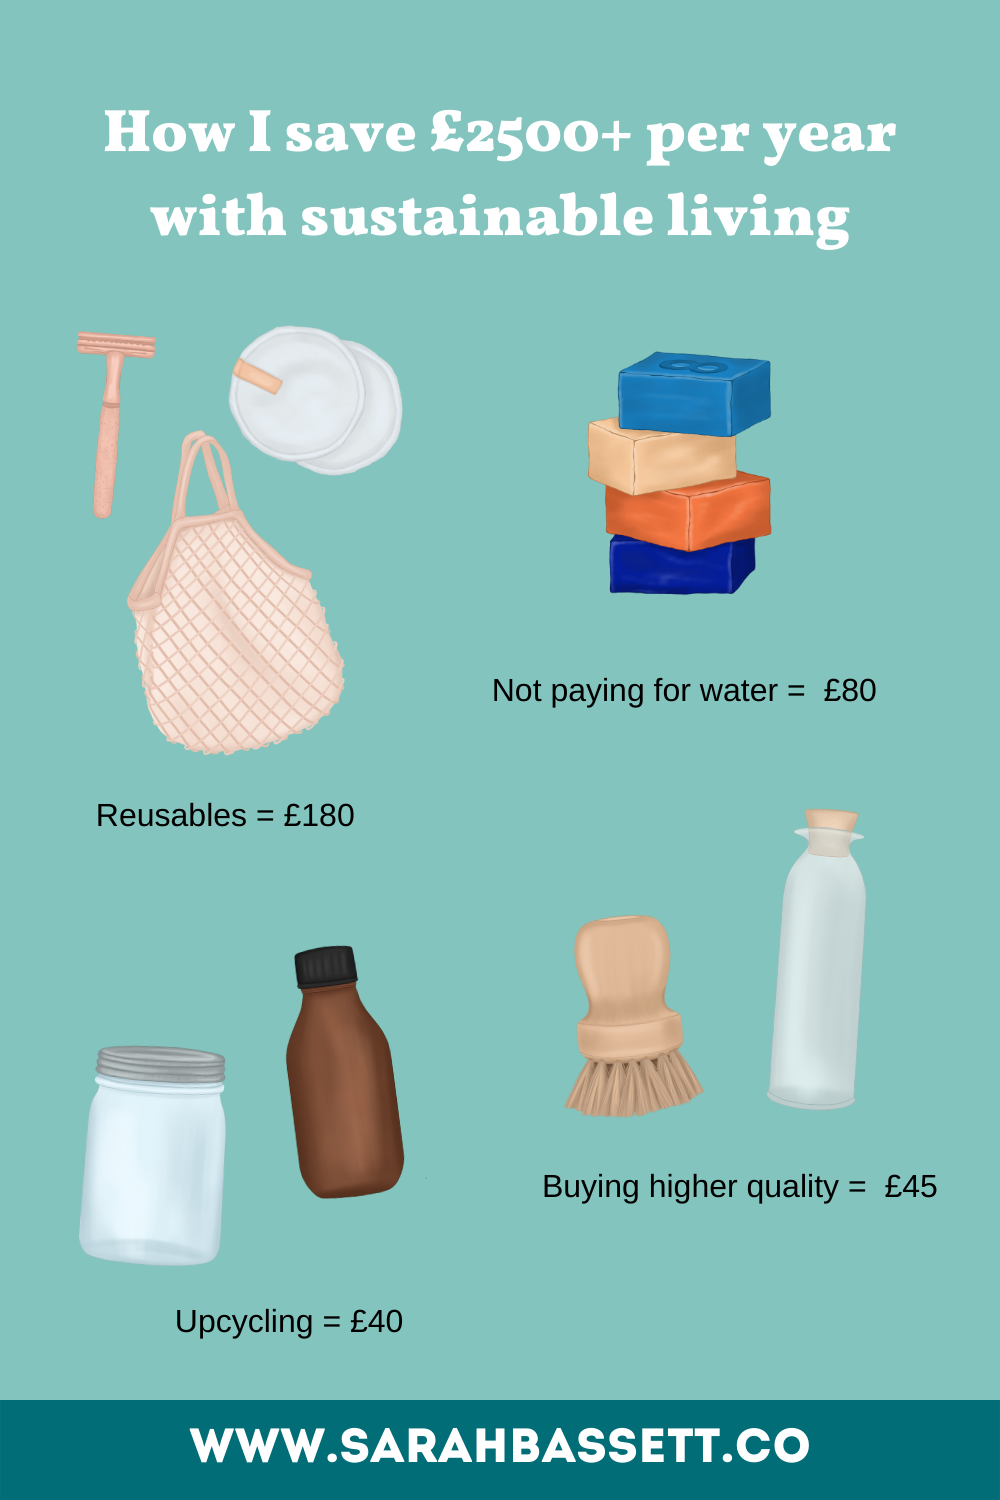 How I save £2500+ per year with sustainable living